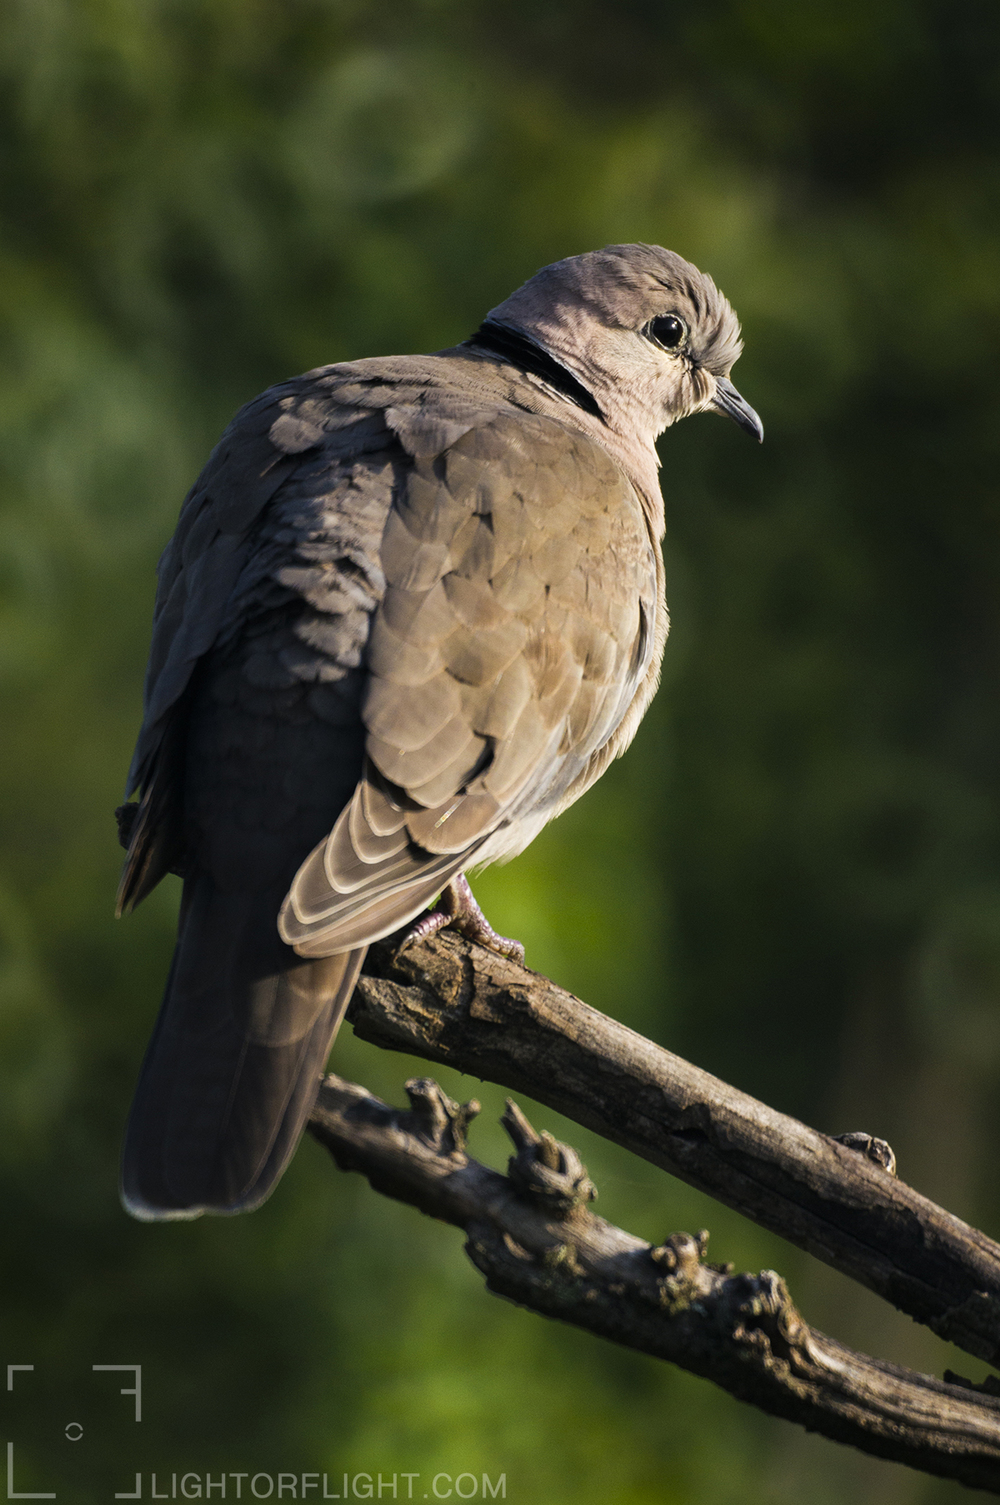 Collared Dove (Streptopelia roseogrisea)